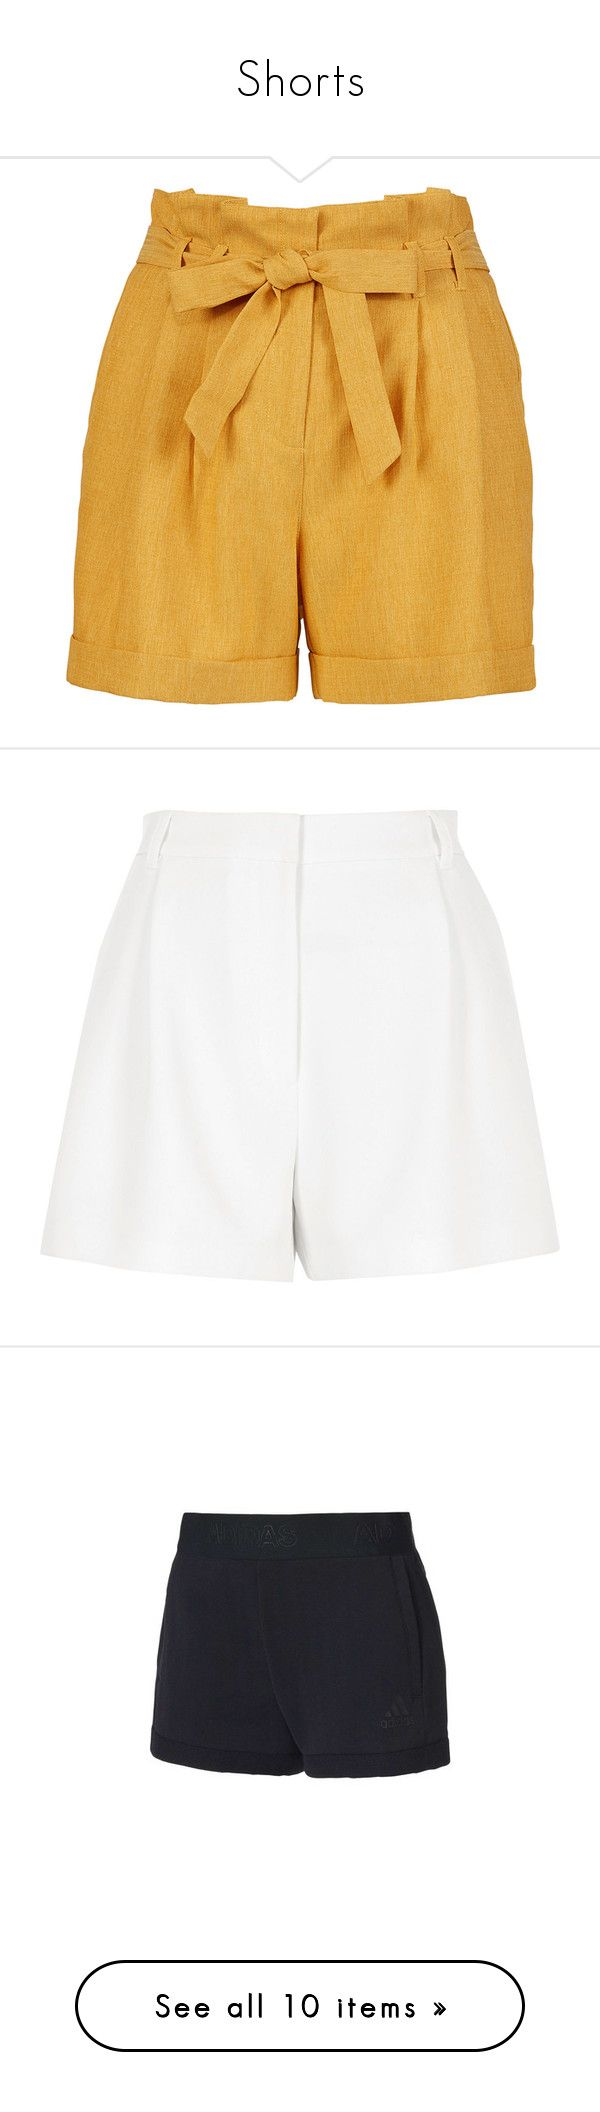 """Shorts"" by kkarolinas ❤ liked on Polyvore featuring shorts, bottoms, basic tshirt, basic tee shirts, tailored shorts, paperbag shorts, basic t shirt, beige, hot short shorts and short cotton shorts"